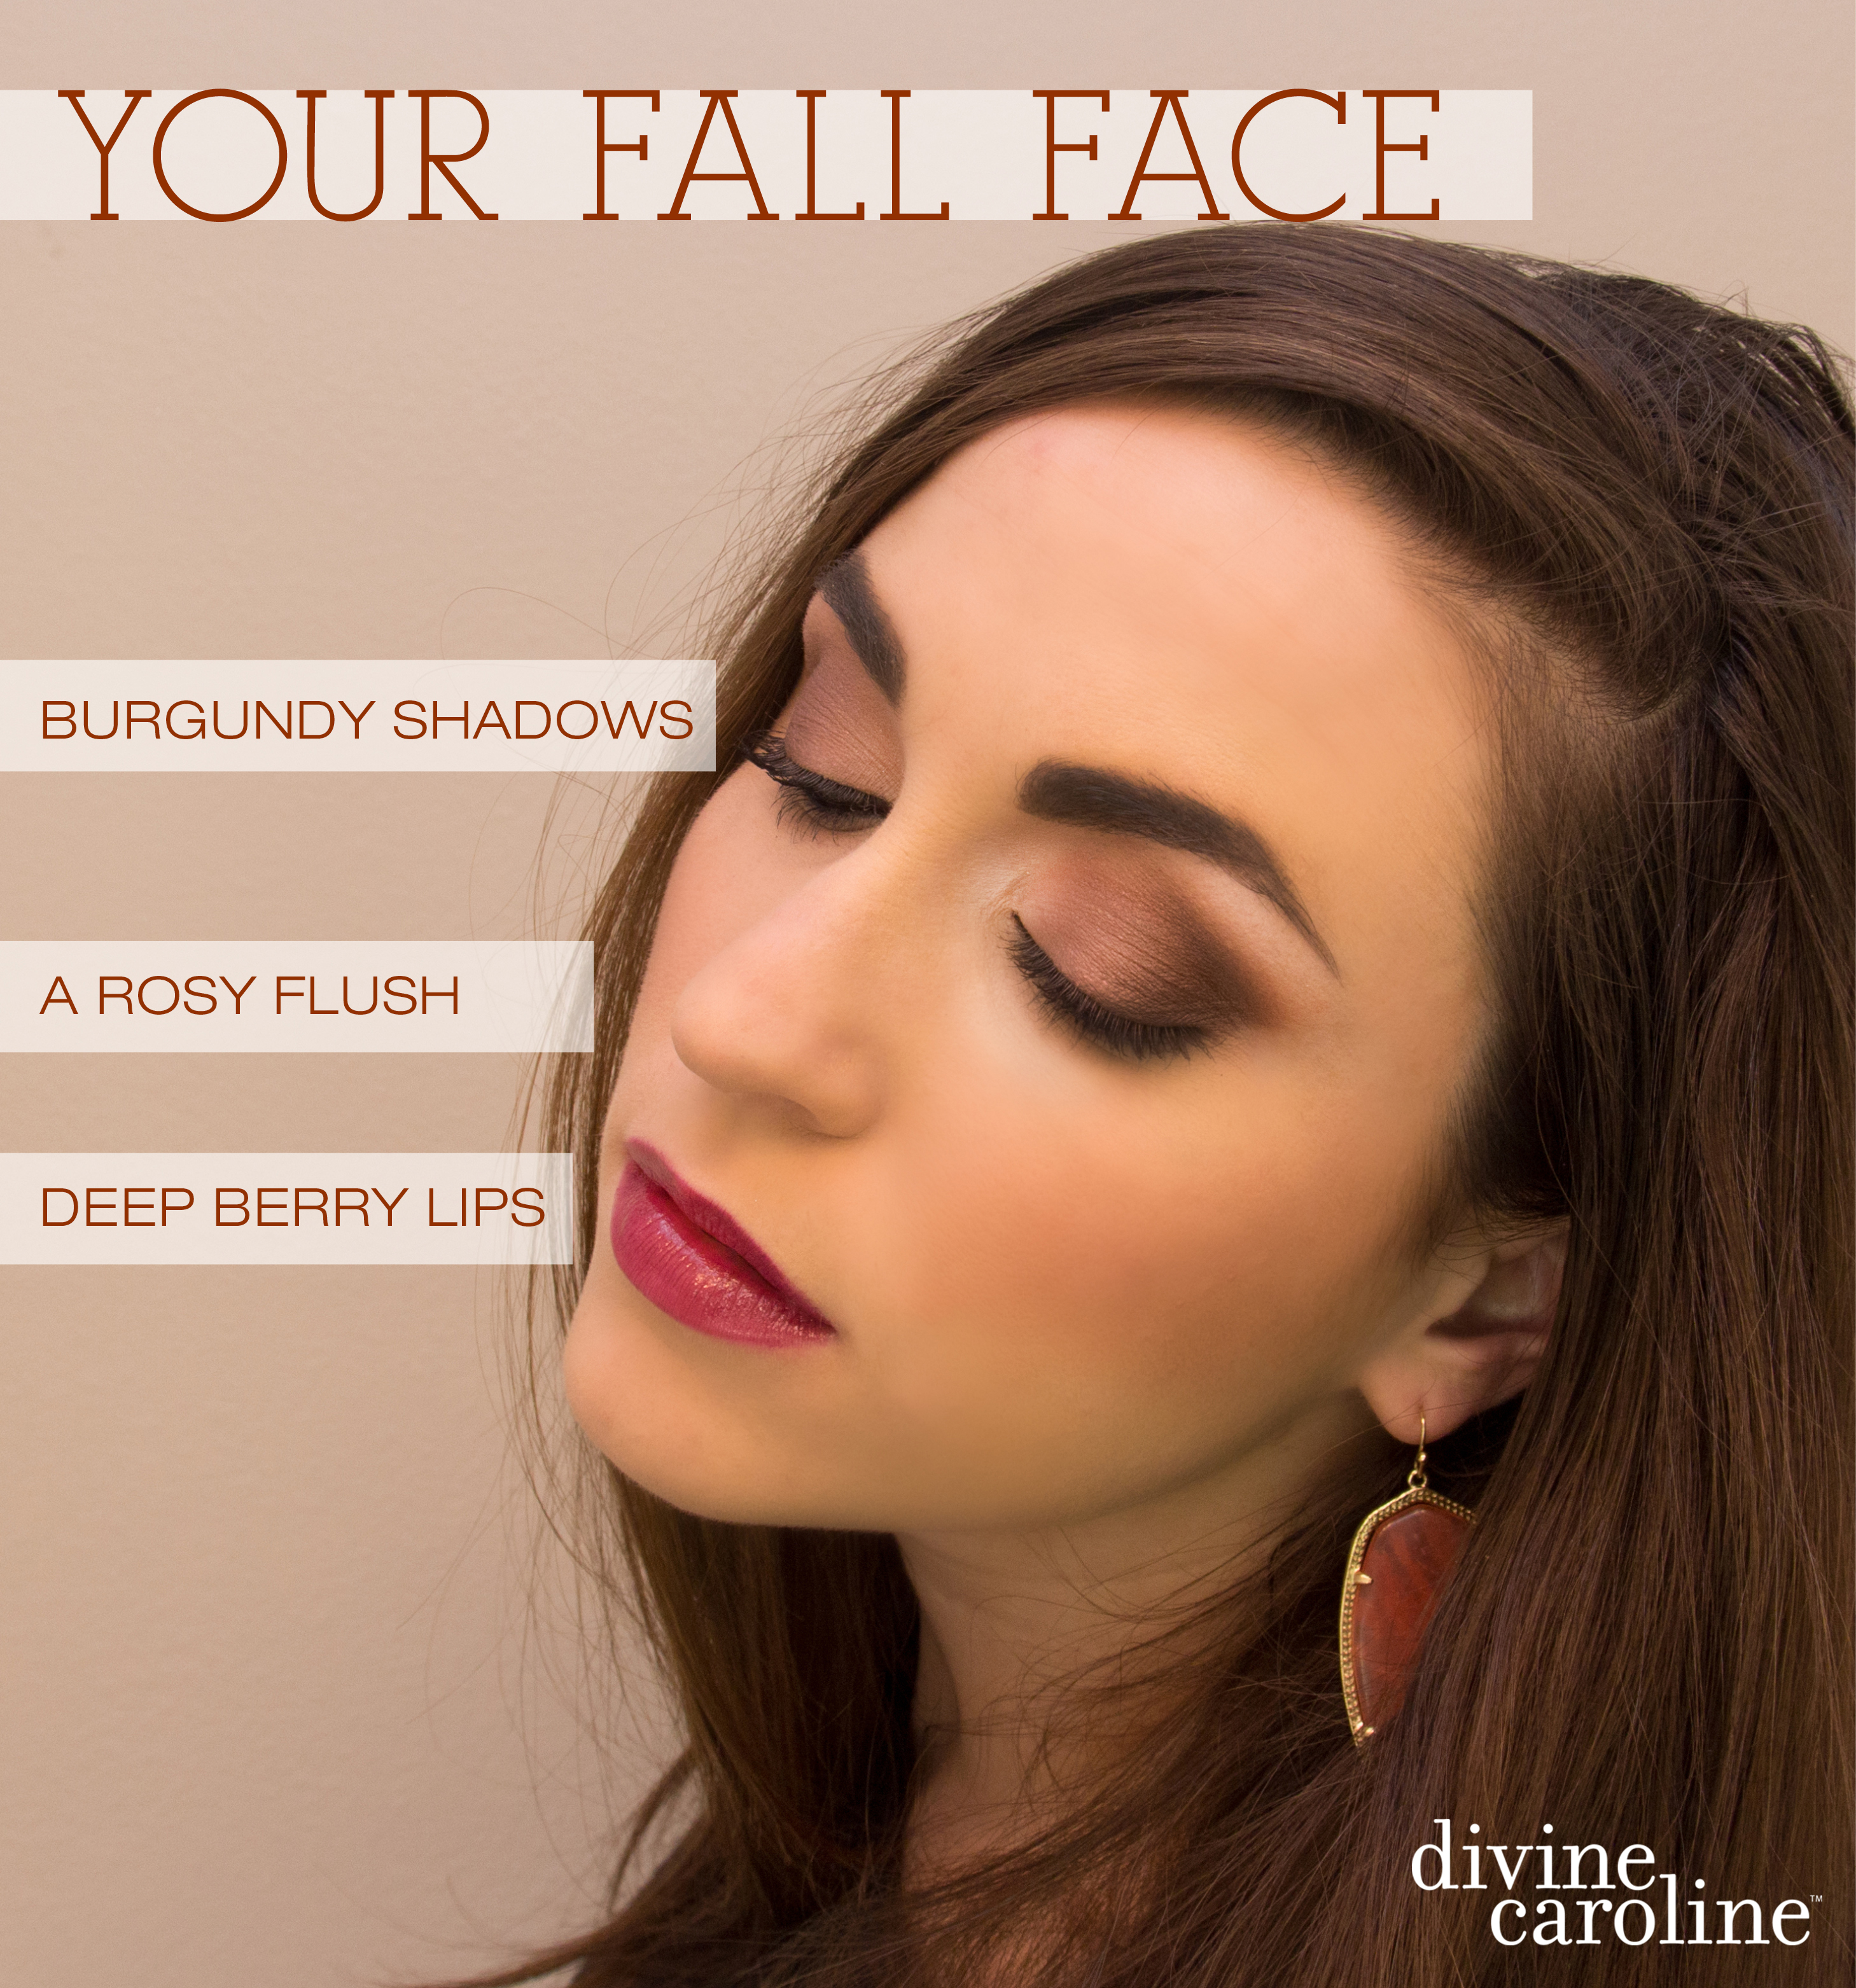 Your Fall Face: Adjusting Your Makeup Palette for Autumn